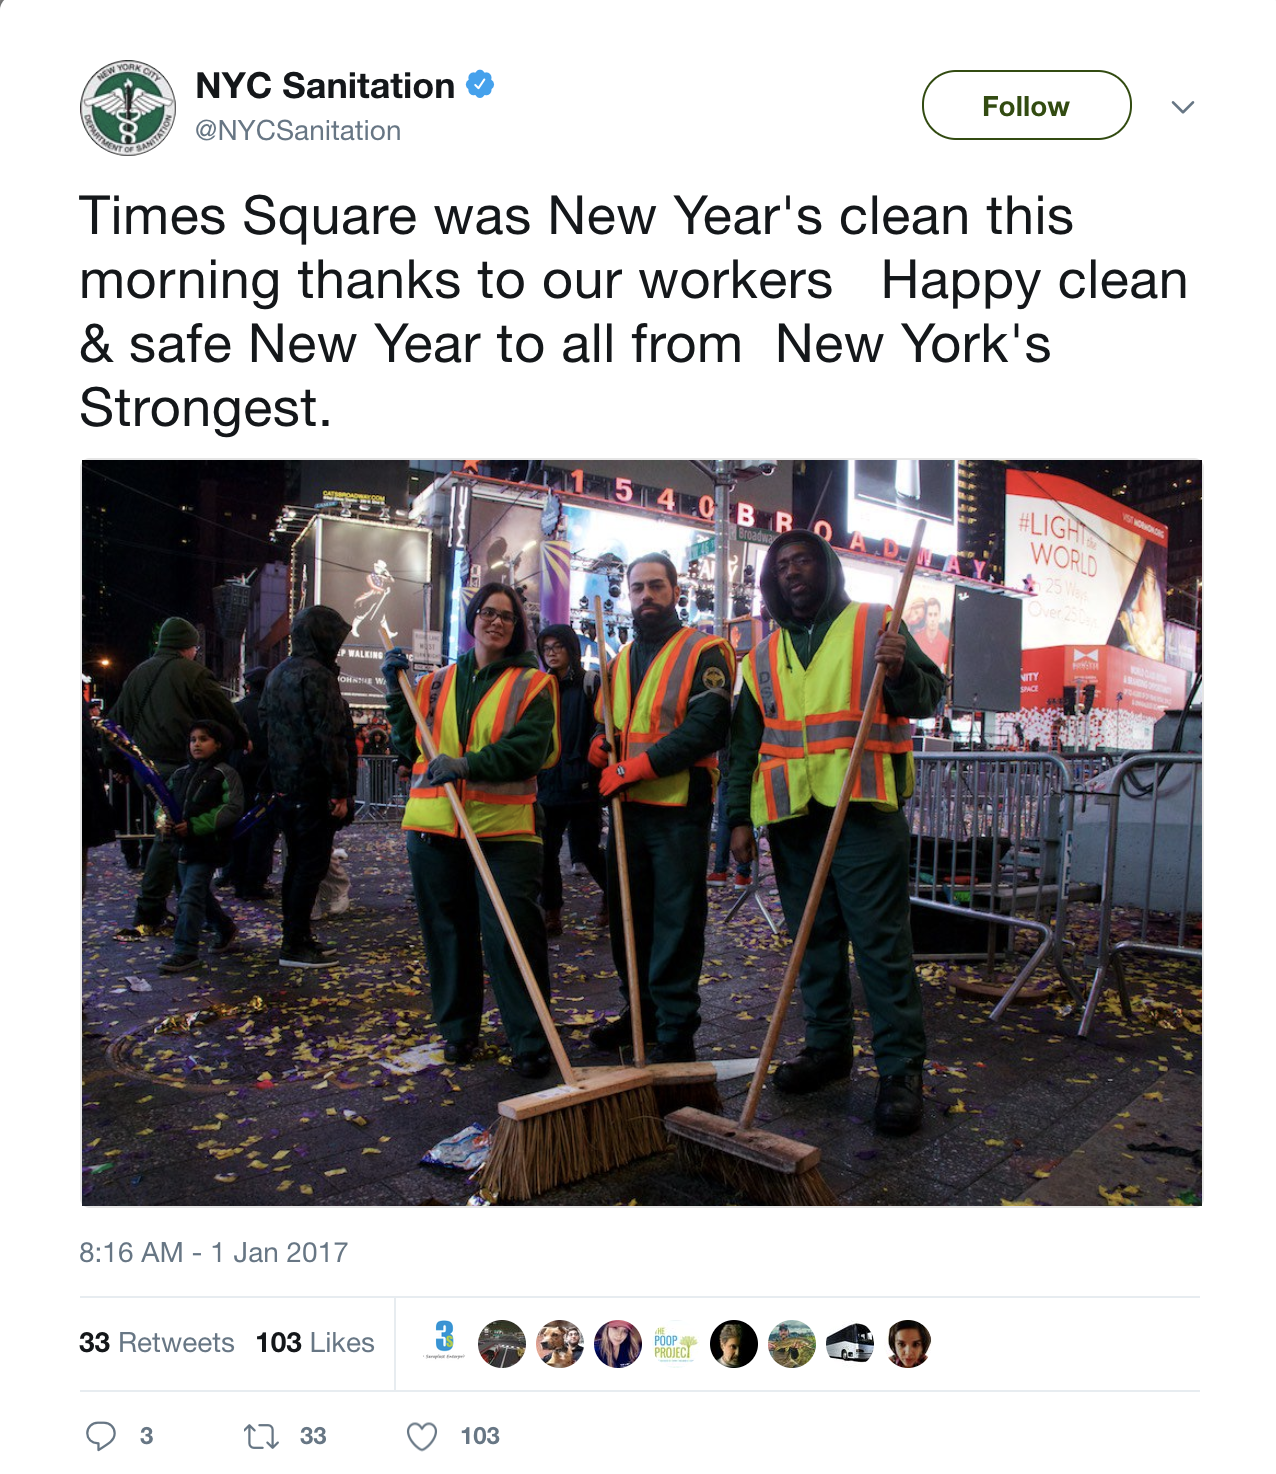 NYC Sanitation Tweet